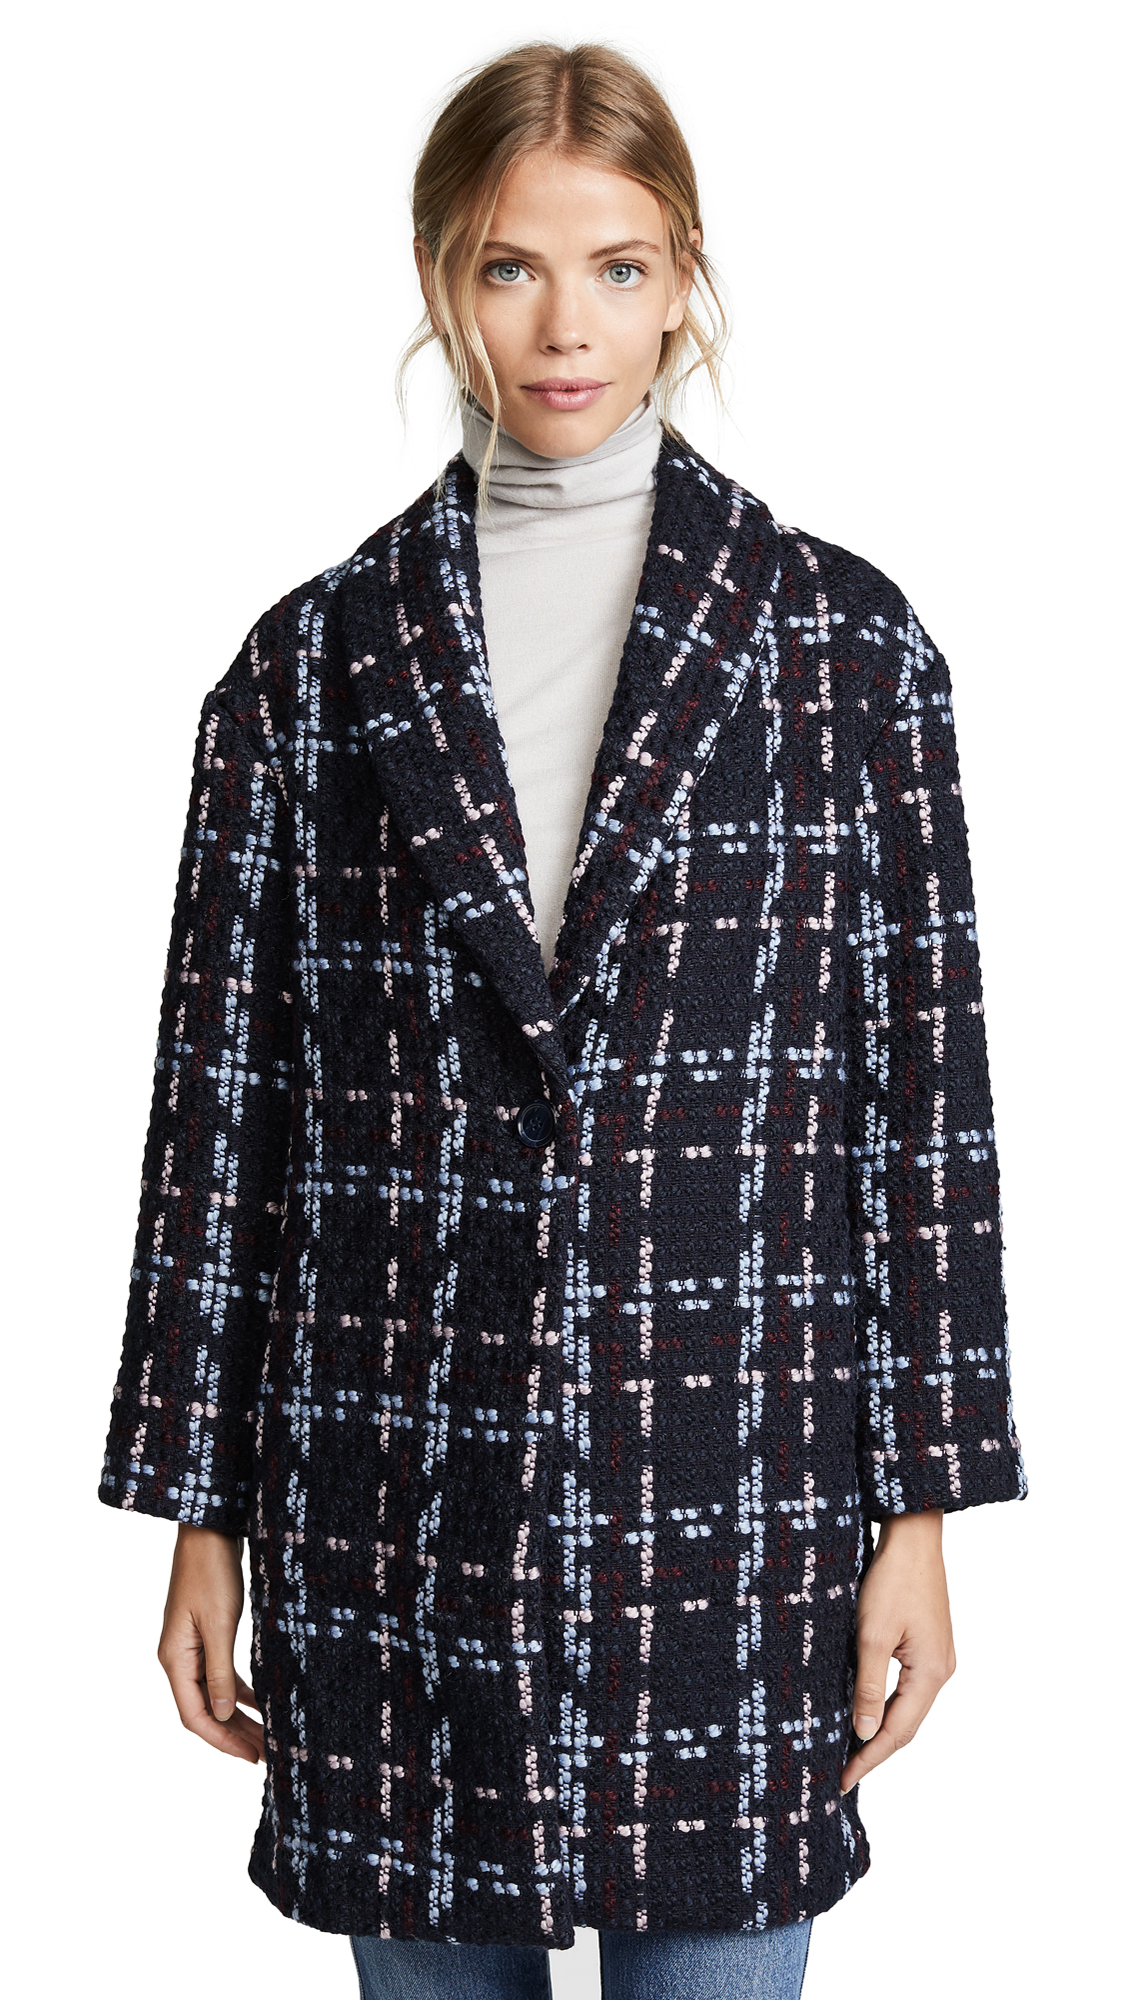 WAYF Valmont Oversized Cocoon Coat - Navy Boucle